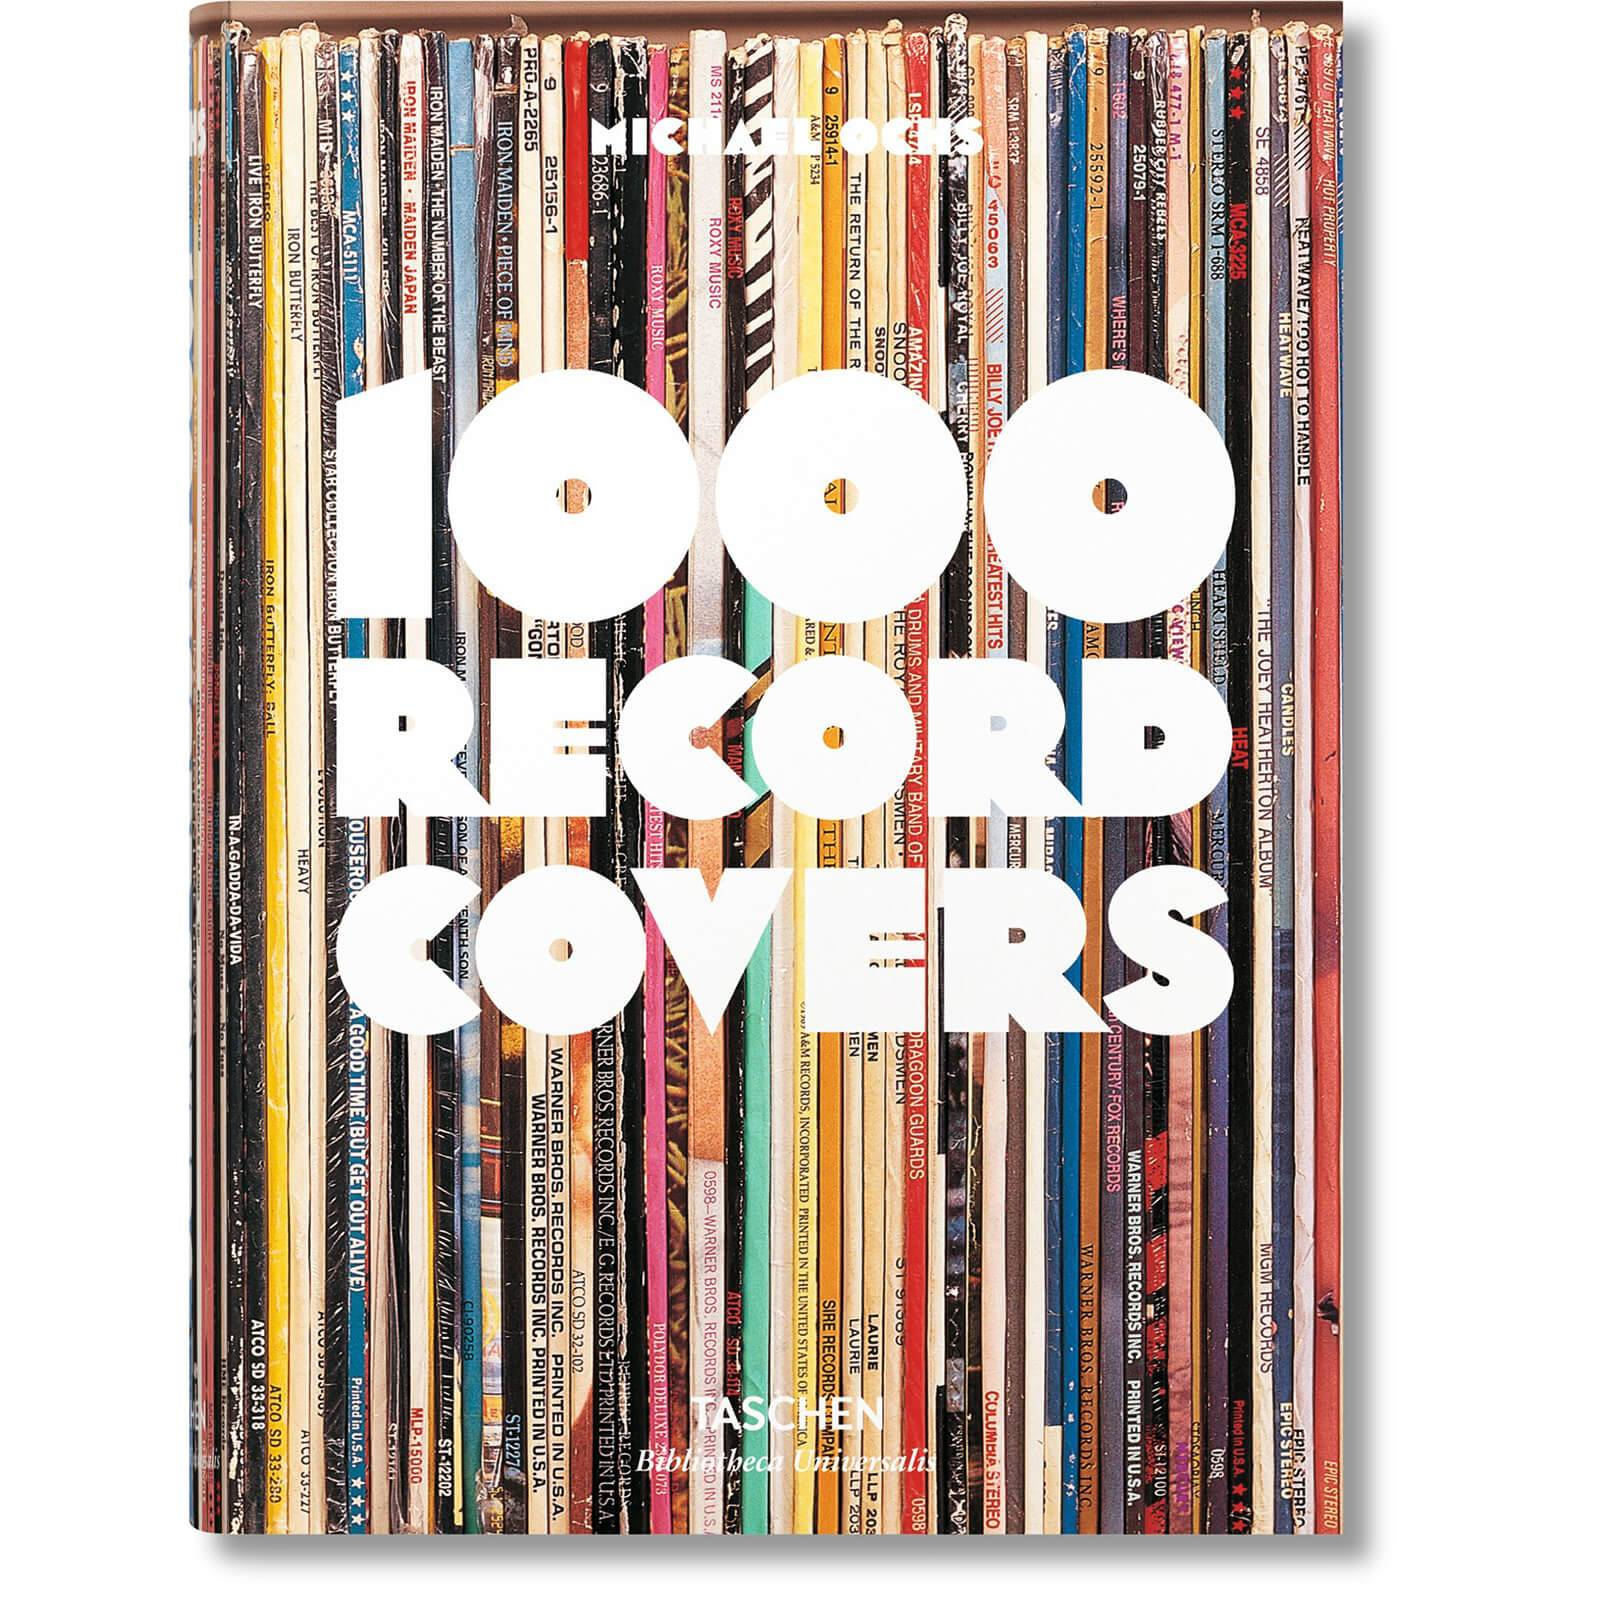 Taschen 1000 Record Covers (Hardcover)